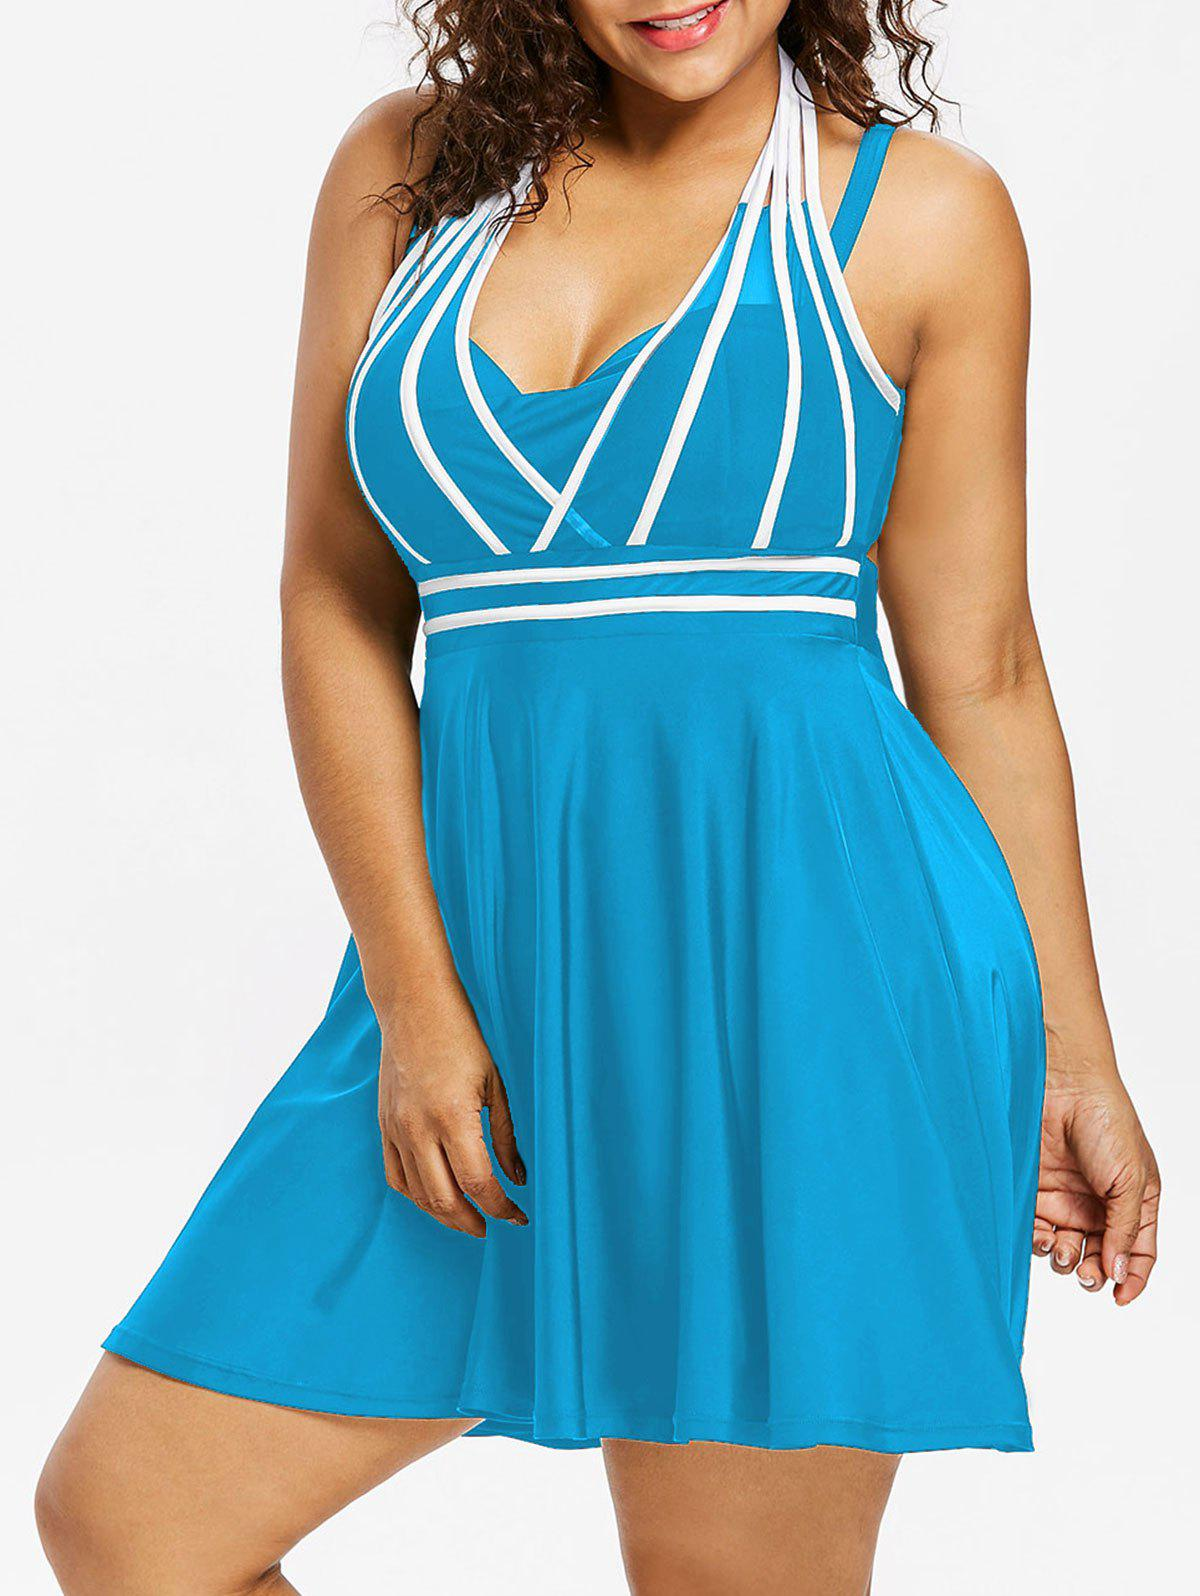 New Plus Size String Skirted One Piece Swimsuit